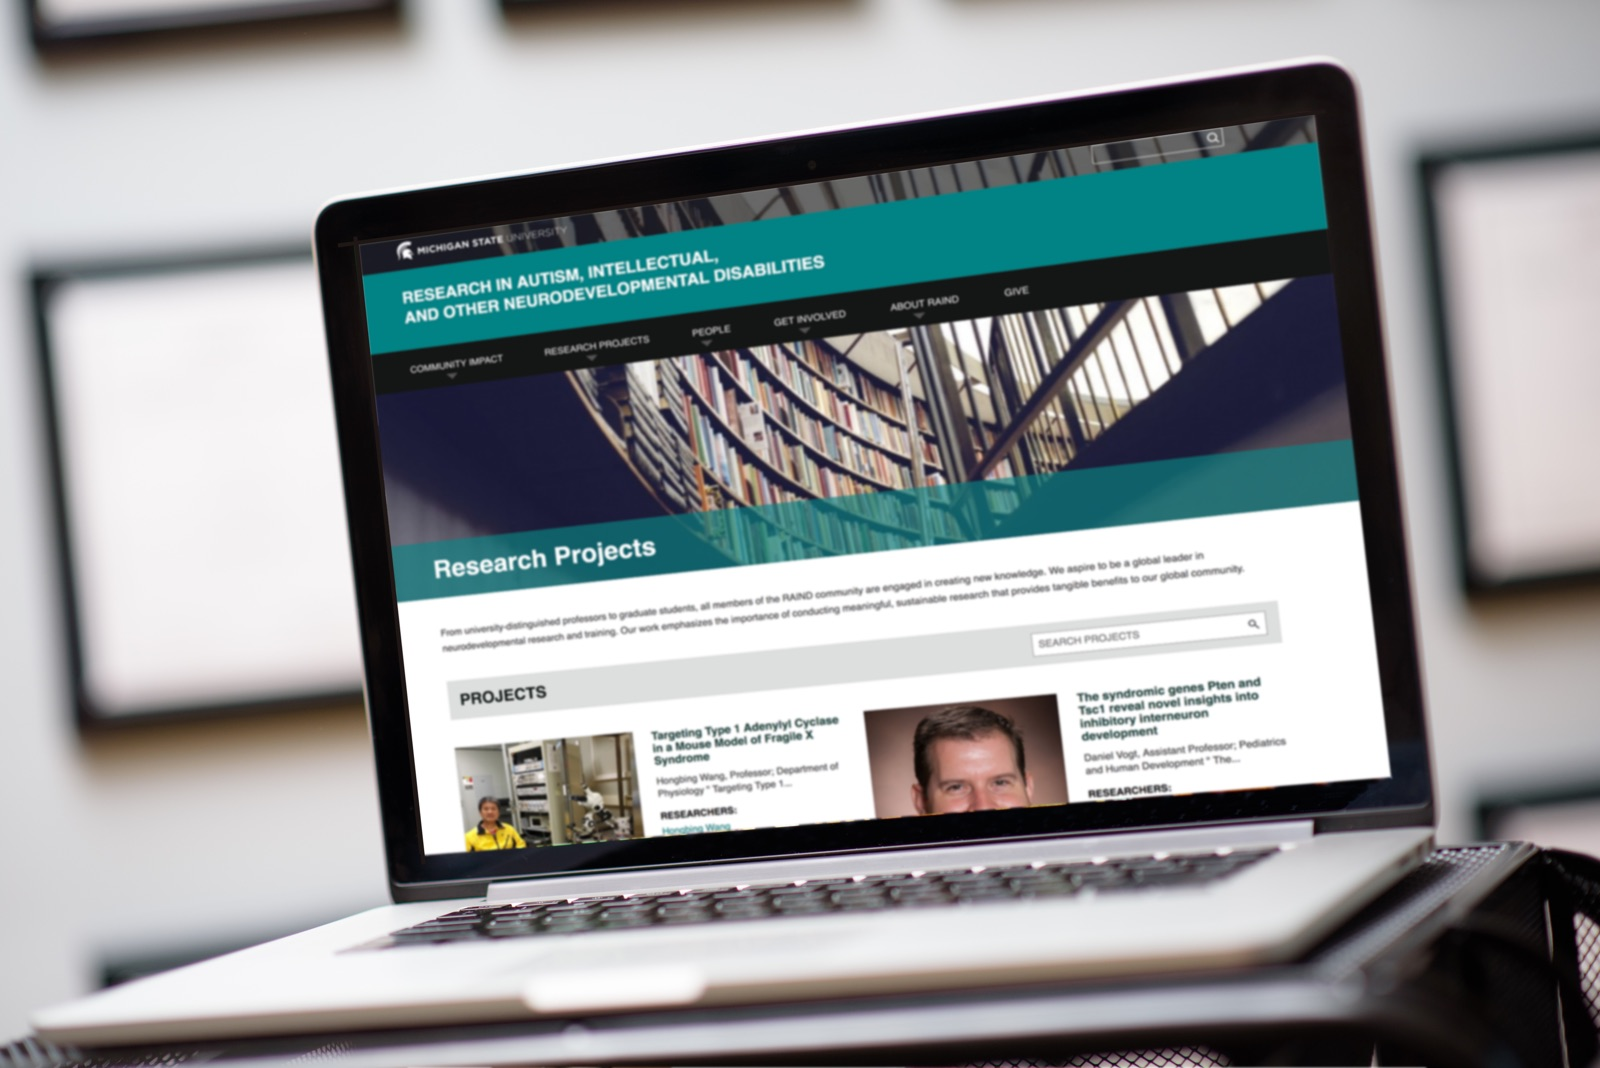 The Research Projects landing page on the MSU RAIND website